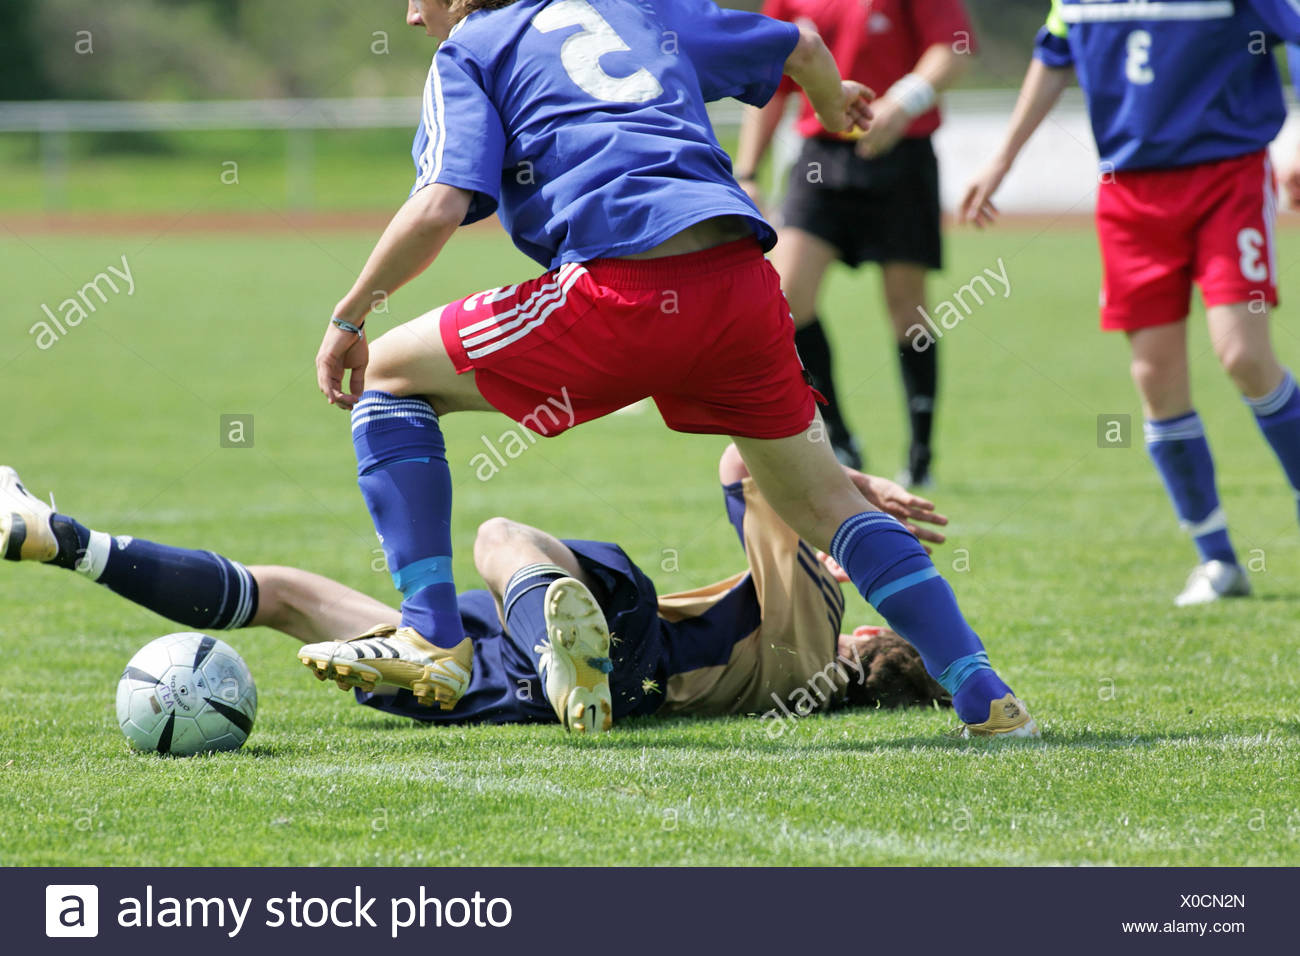 juniors football U15 RB FL soccer play scene play game match foul sports juniors children teenagers yout - Stock Image